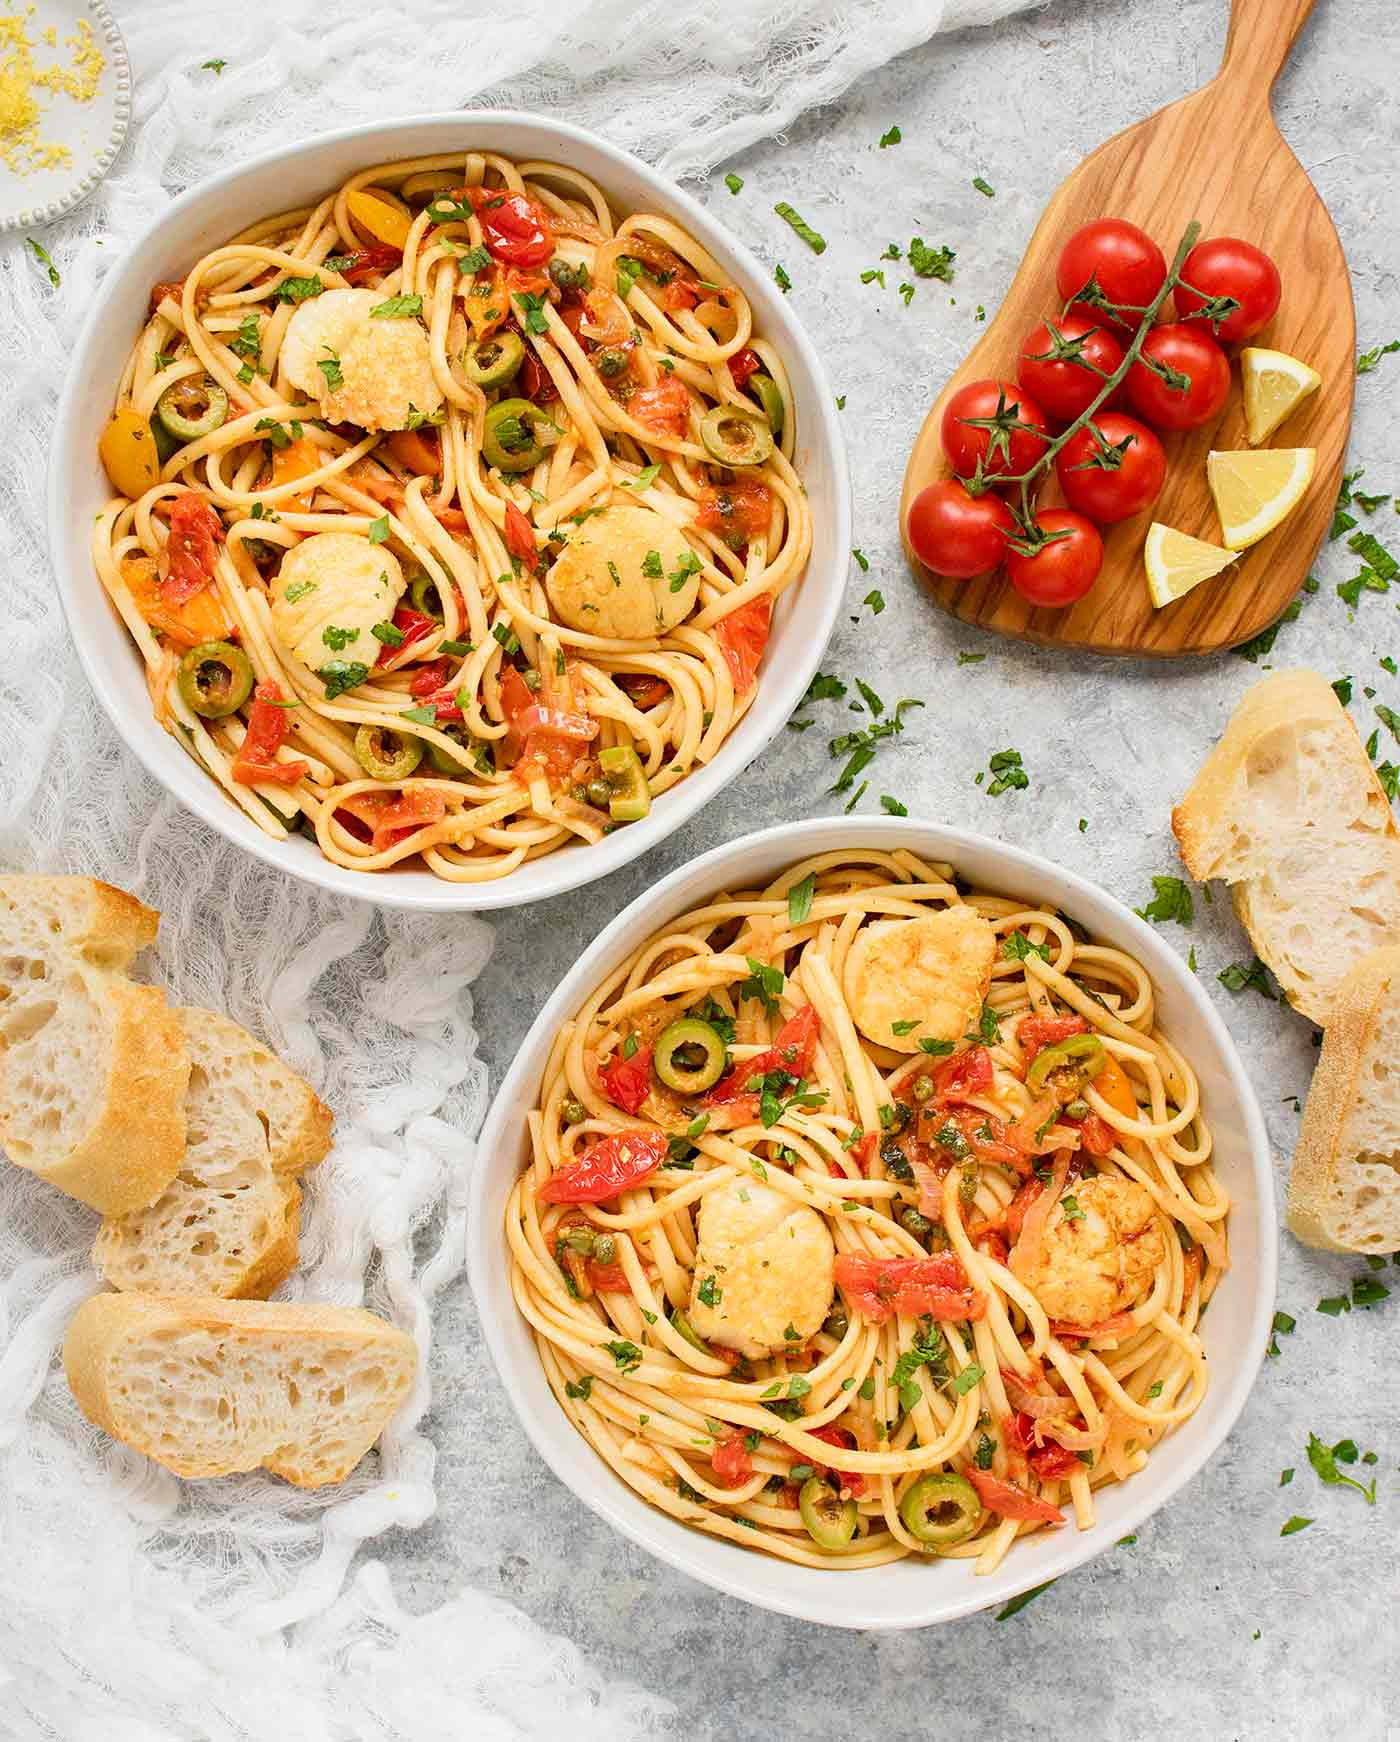 Two bowls of Mediterranean Scallop Linguine with bread on the side